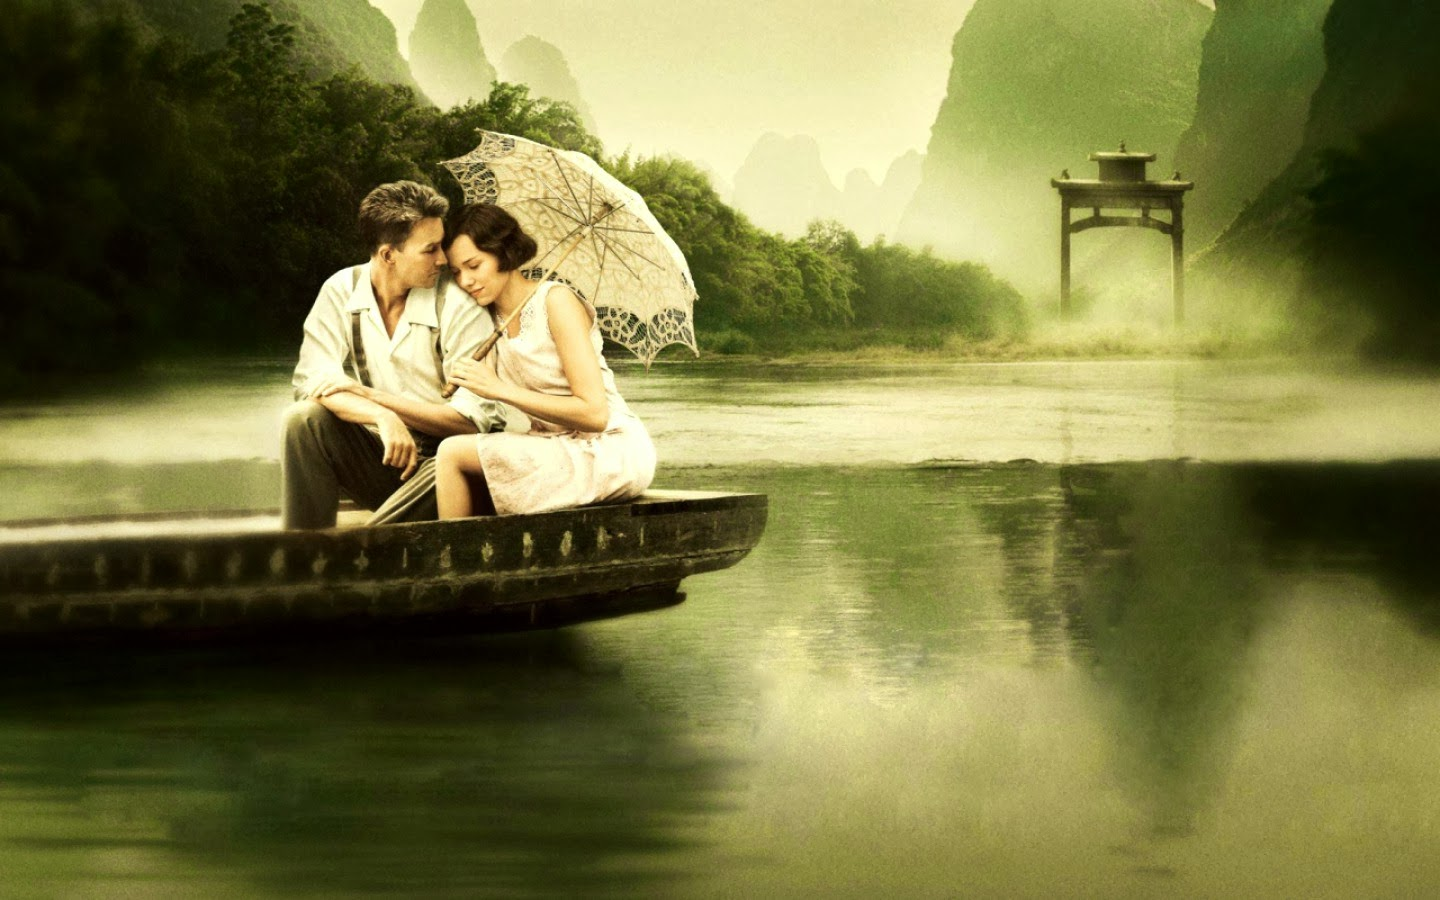 Romantic Couple HD Wallpaper and Image couple in boat 1440x900